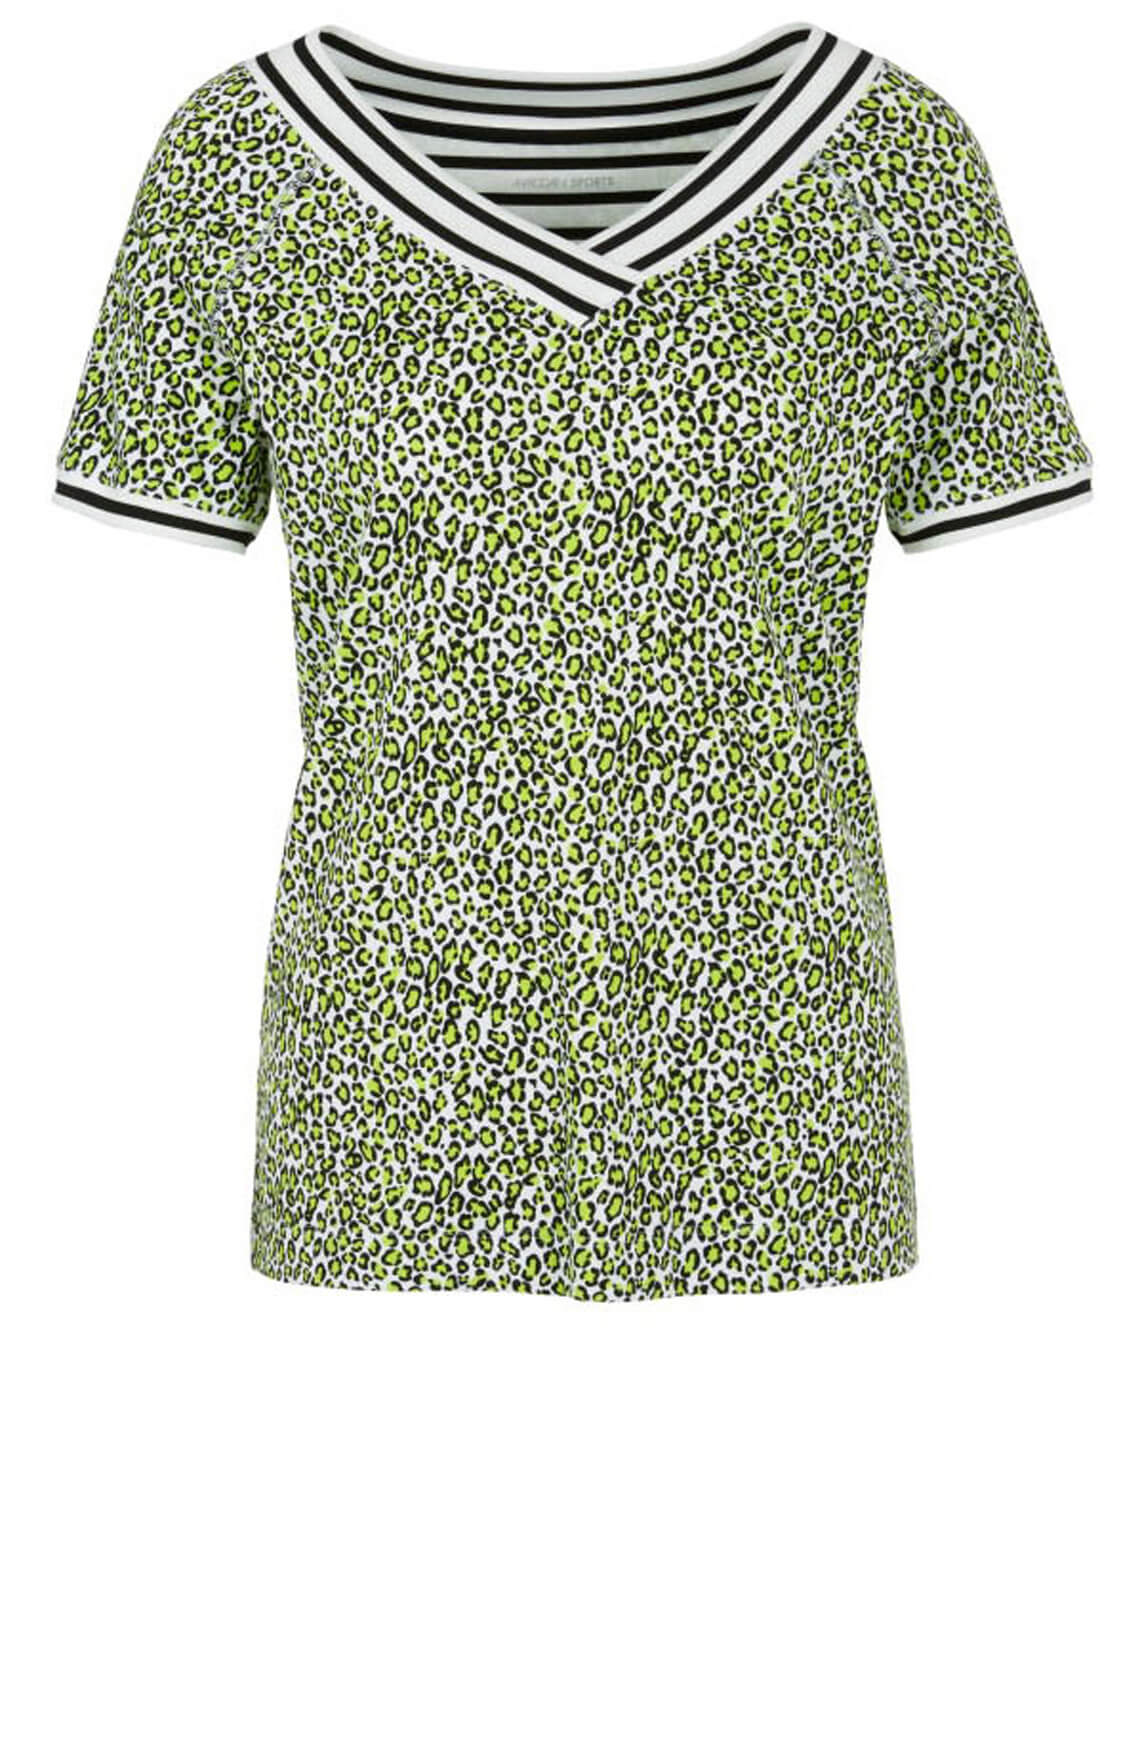 Marccain Sports Dames Animalprint shirt groen